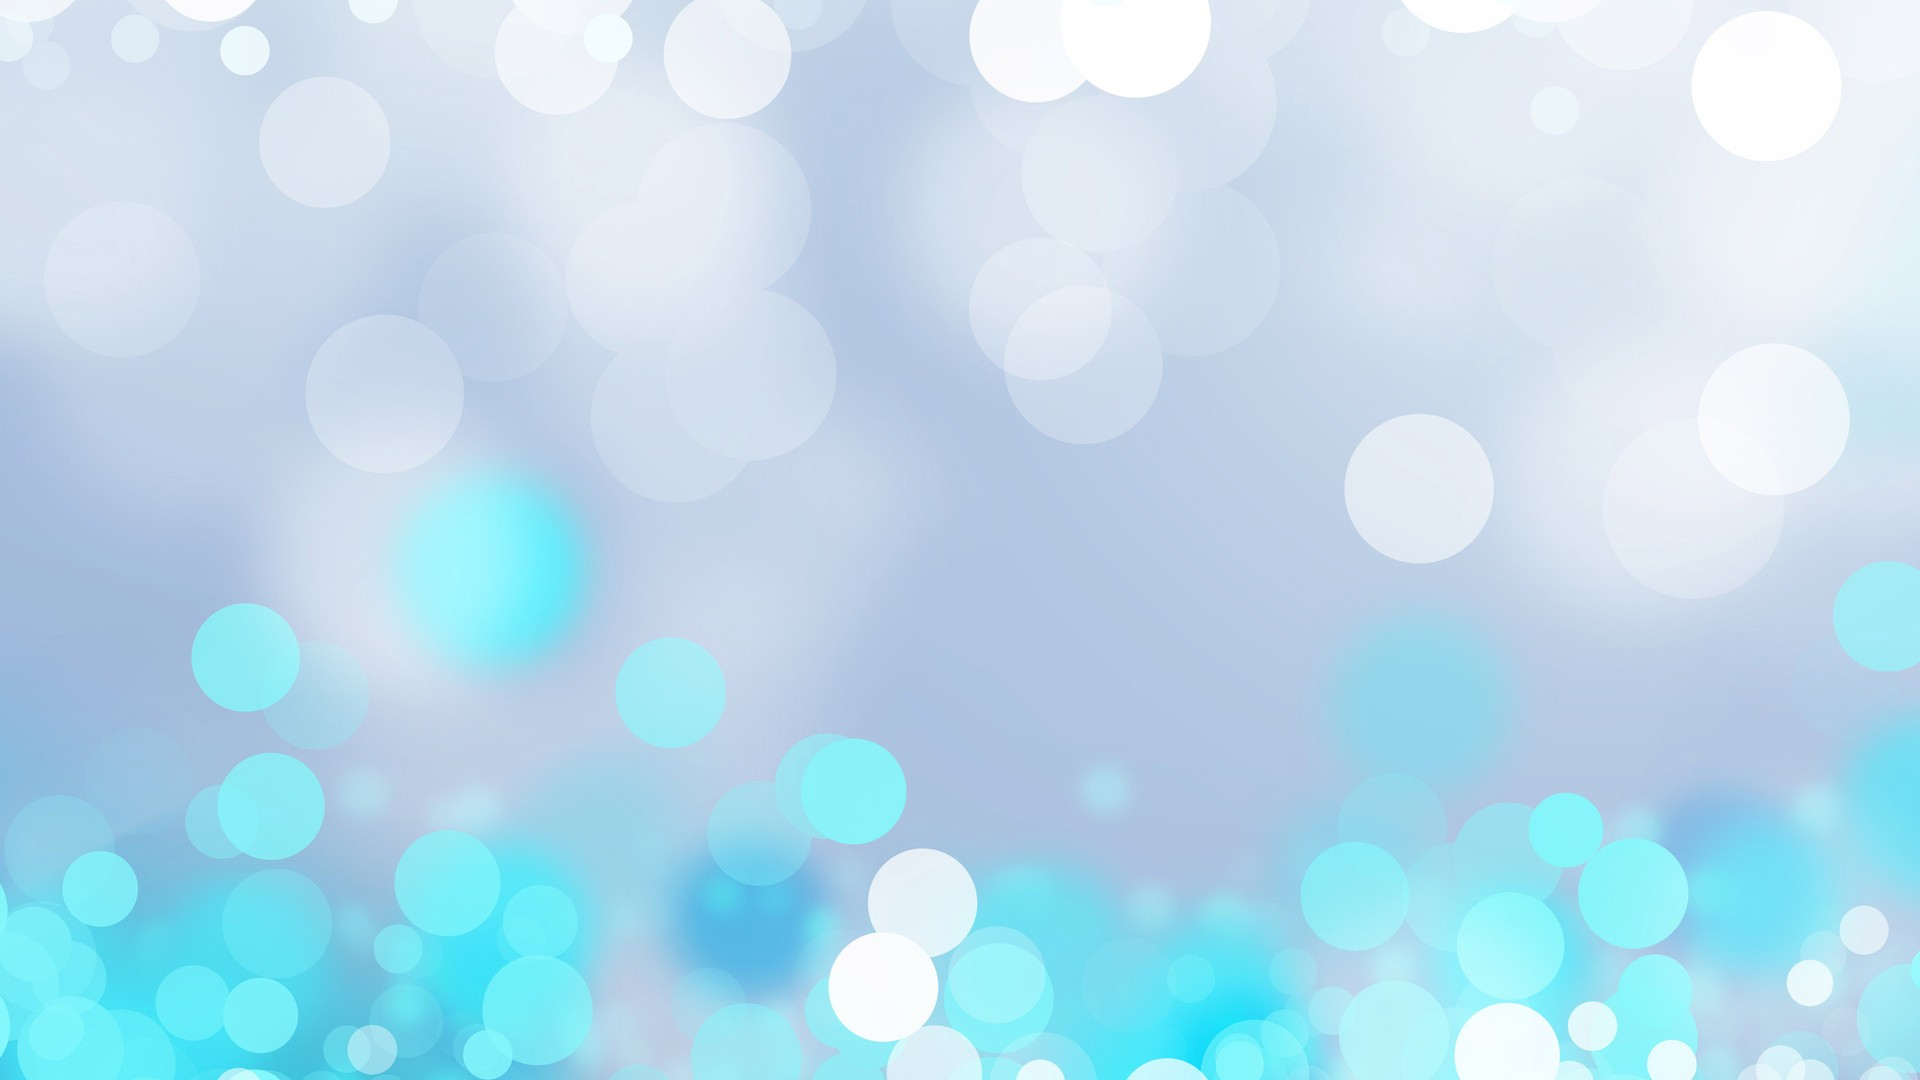 White glitter background download free hd backgrounds - White background 1920x1080 ...